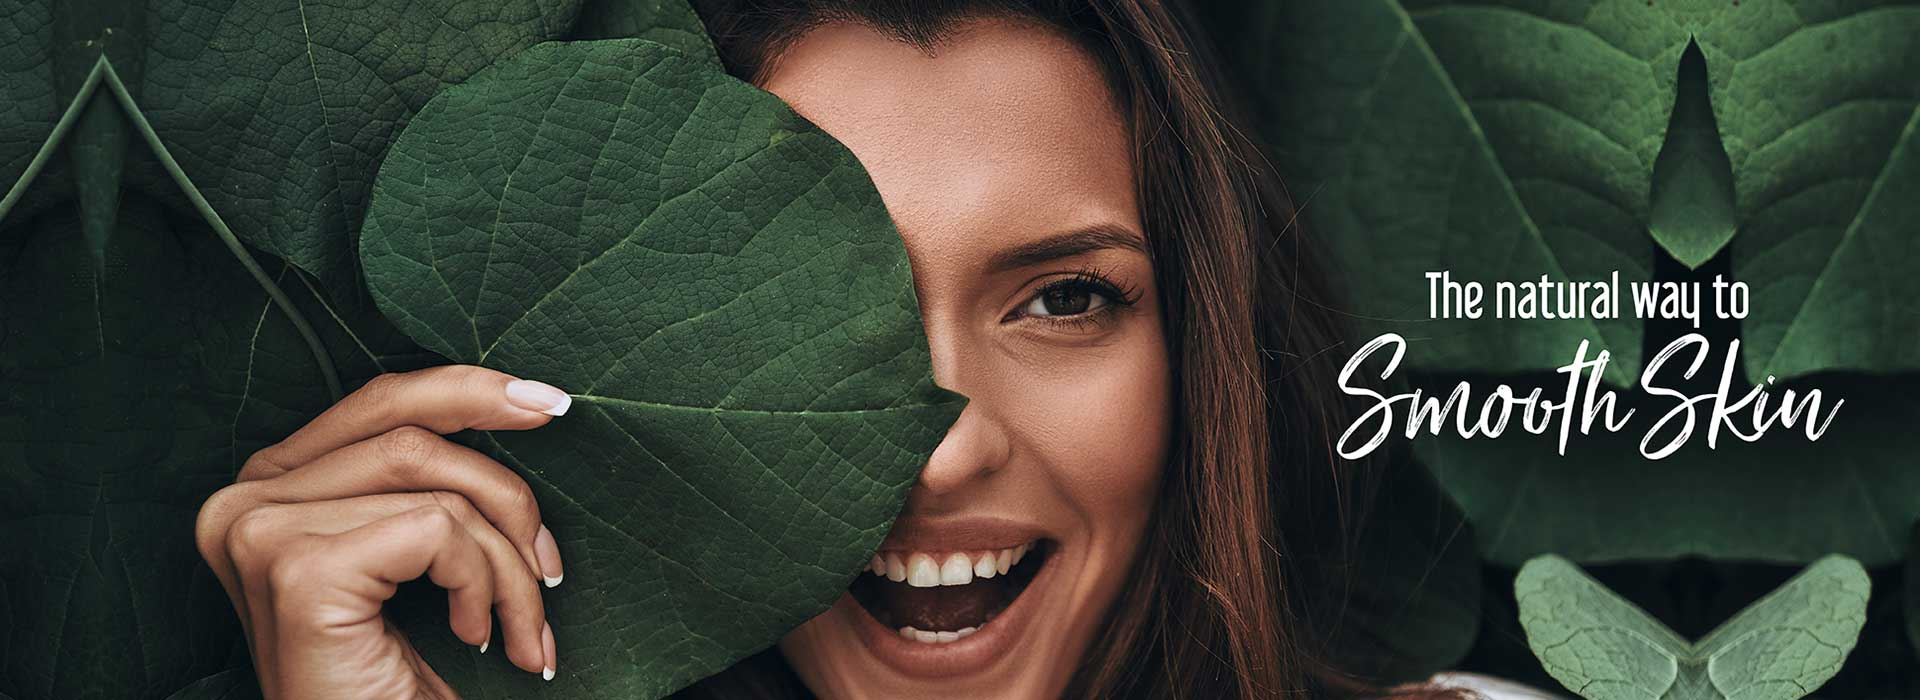 Woman smiling holding palm leaf over half of face next to The natural way to Smooth Skin text